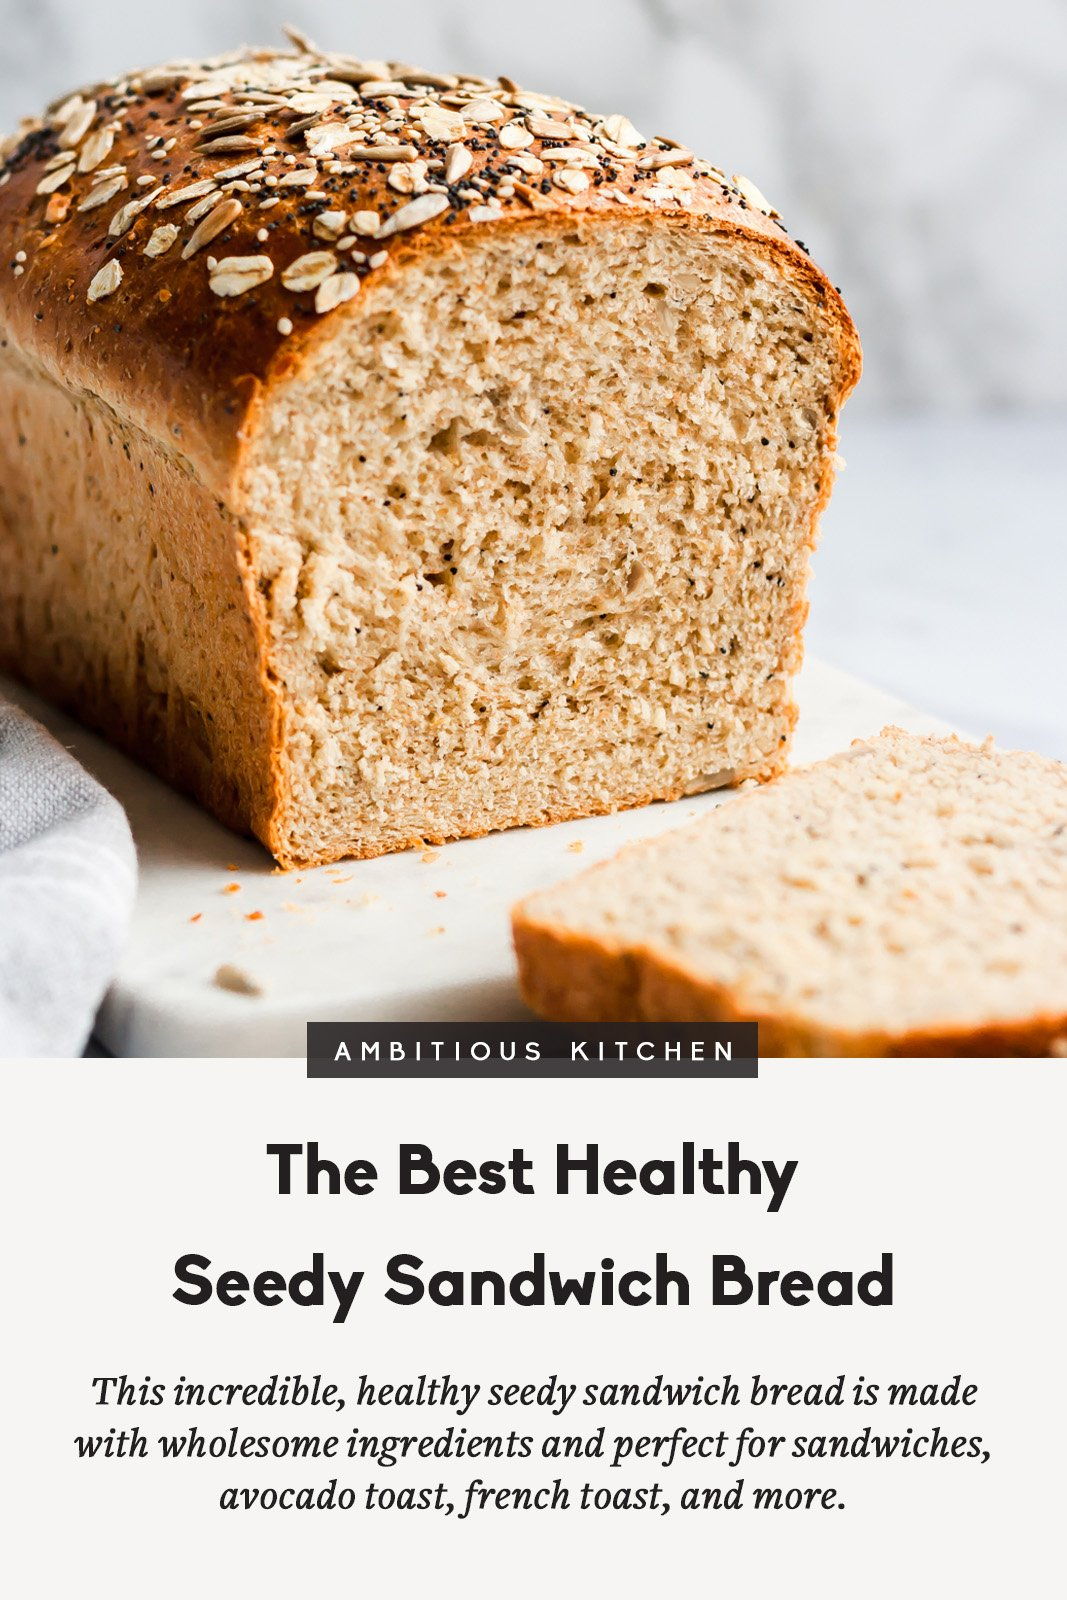 This homemade healthy sandwich bread recipe is soft and made with healthy ingredients like whole wheat flour, sunflower seeds, poppyseeds, sesame seeds, oats, flaxseed and just a touch of honey. You'll love making this for healthy sandwiches, avocado toast, french toast and so much more! THIS IS THE BEST HOMEMADE BREAD EVER!